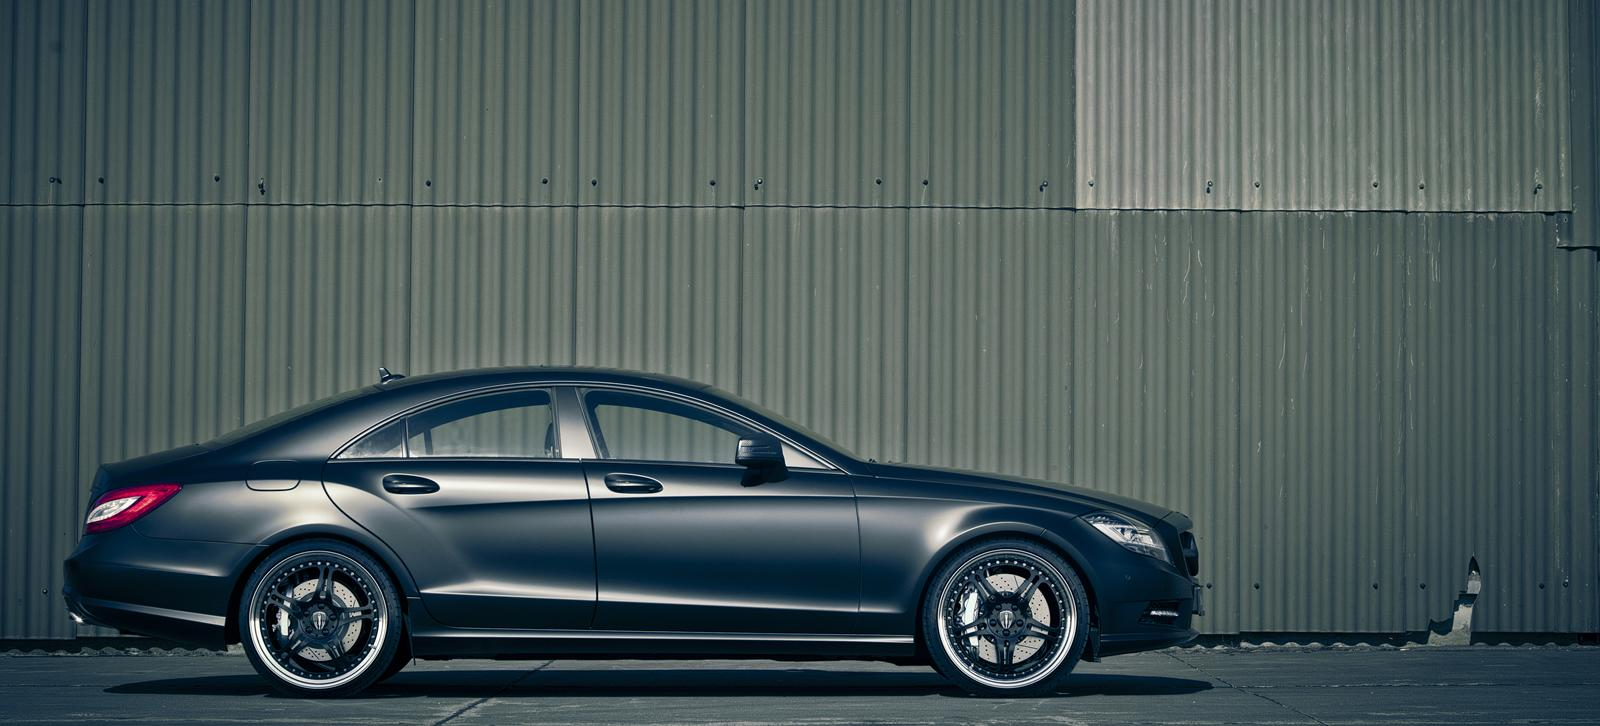 mercedes cls edition black by kicherer packs 6 Kicherer captures market with black Mercedes CLS model